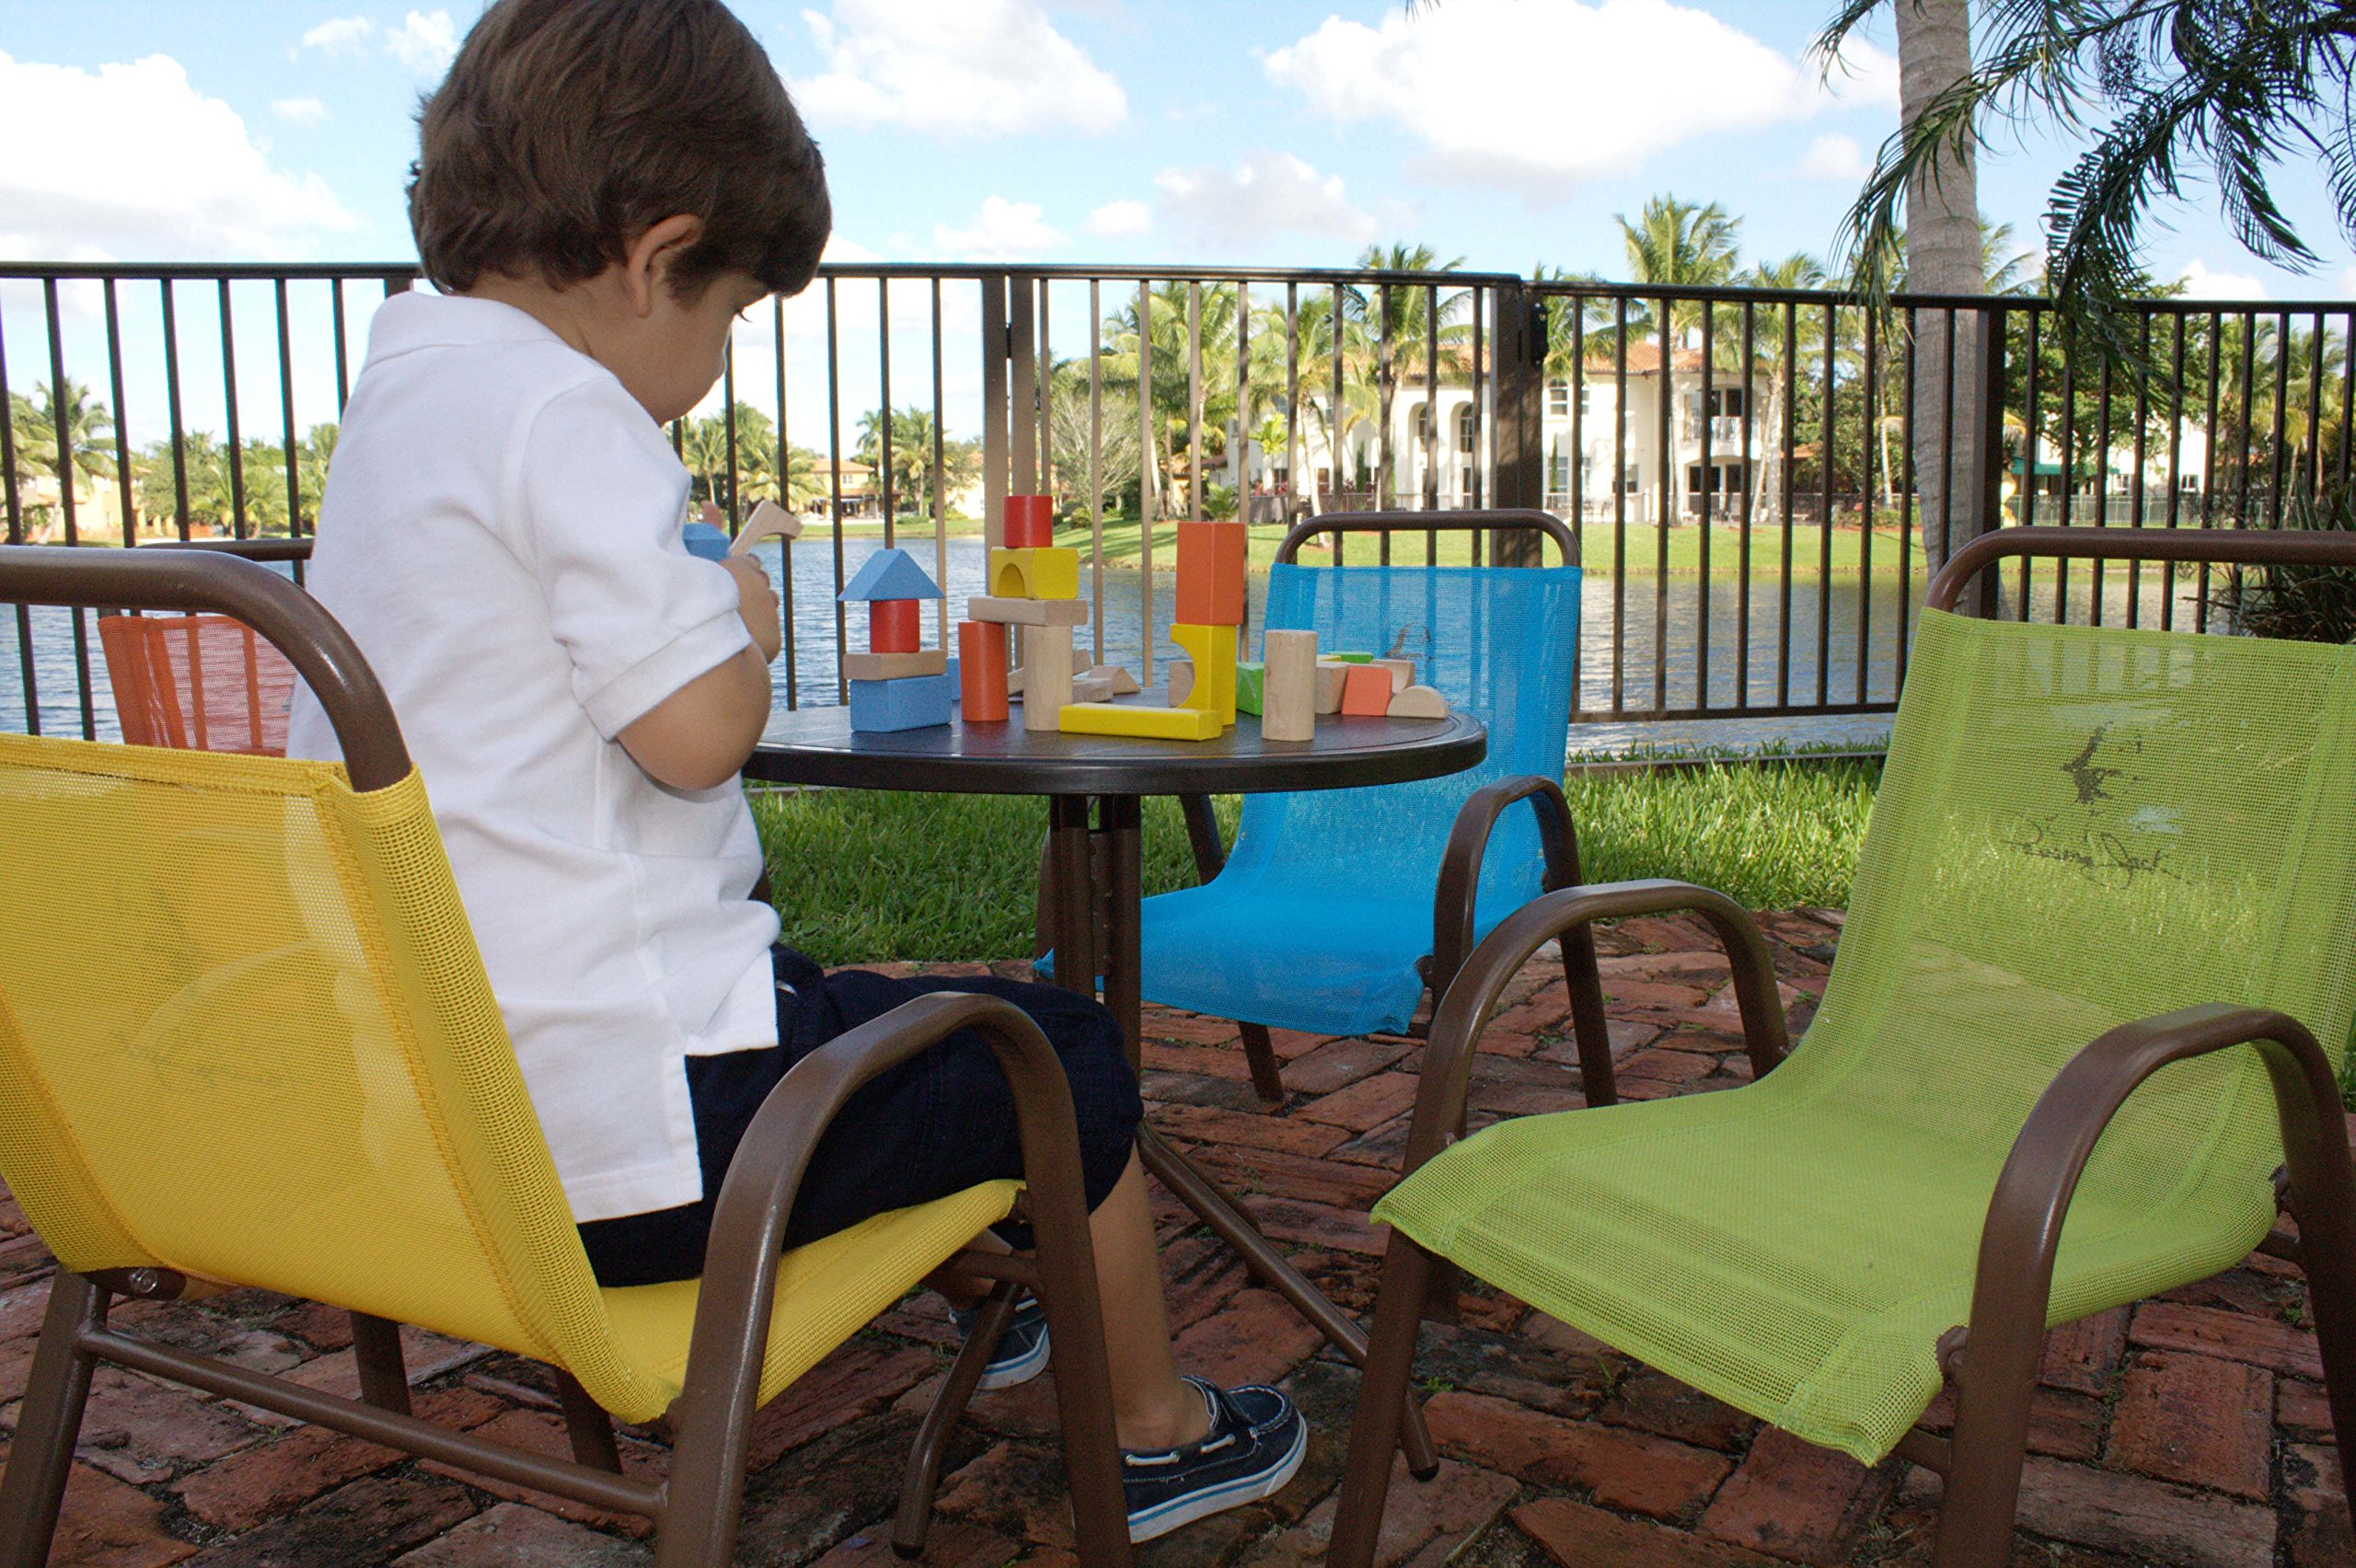 Panama Jack Kids 5-Piece Outdoor Dining Set, Multicolored by Panama Jack Kids (Image #9)